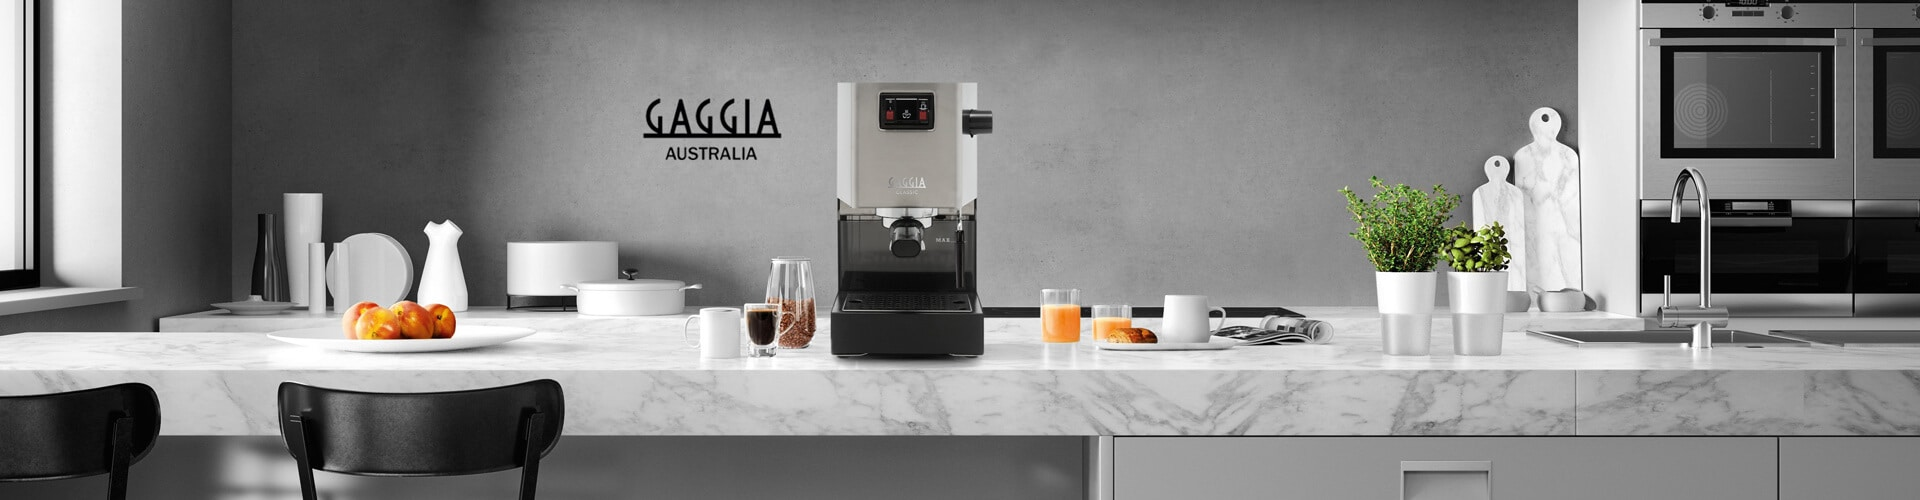 Gaggia-Classic_Lifestyle2-Slide-BW-1920x500 Coffee At Home